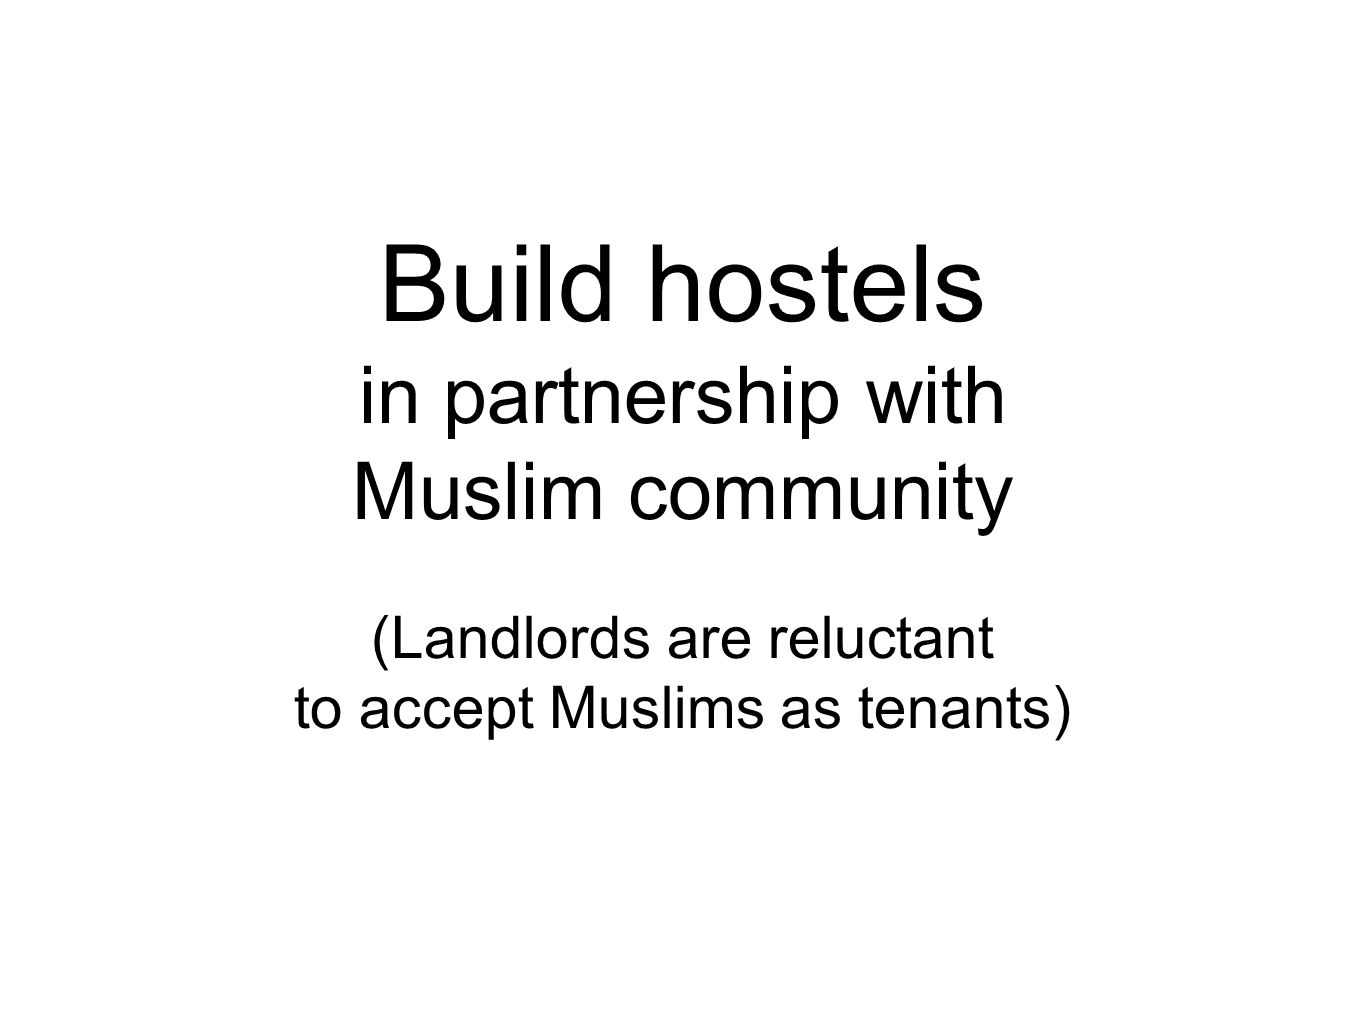 Build hostels in partnership with Muslim community (Landlords are reluctant to accept Muslims as tenants)